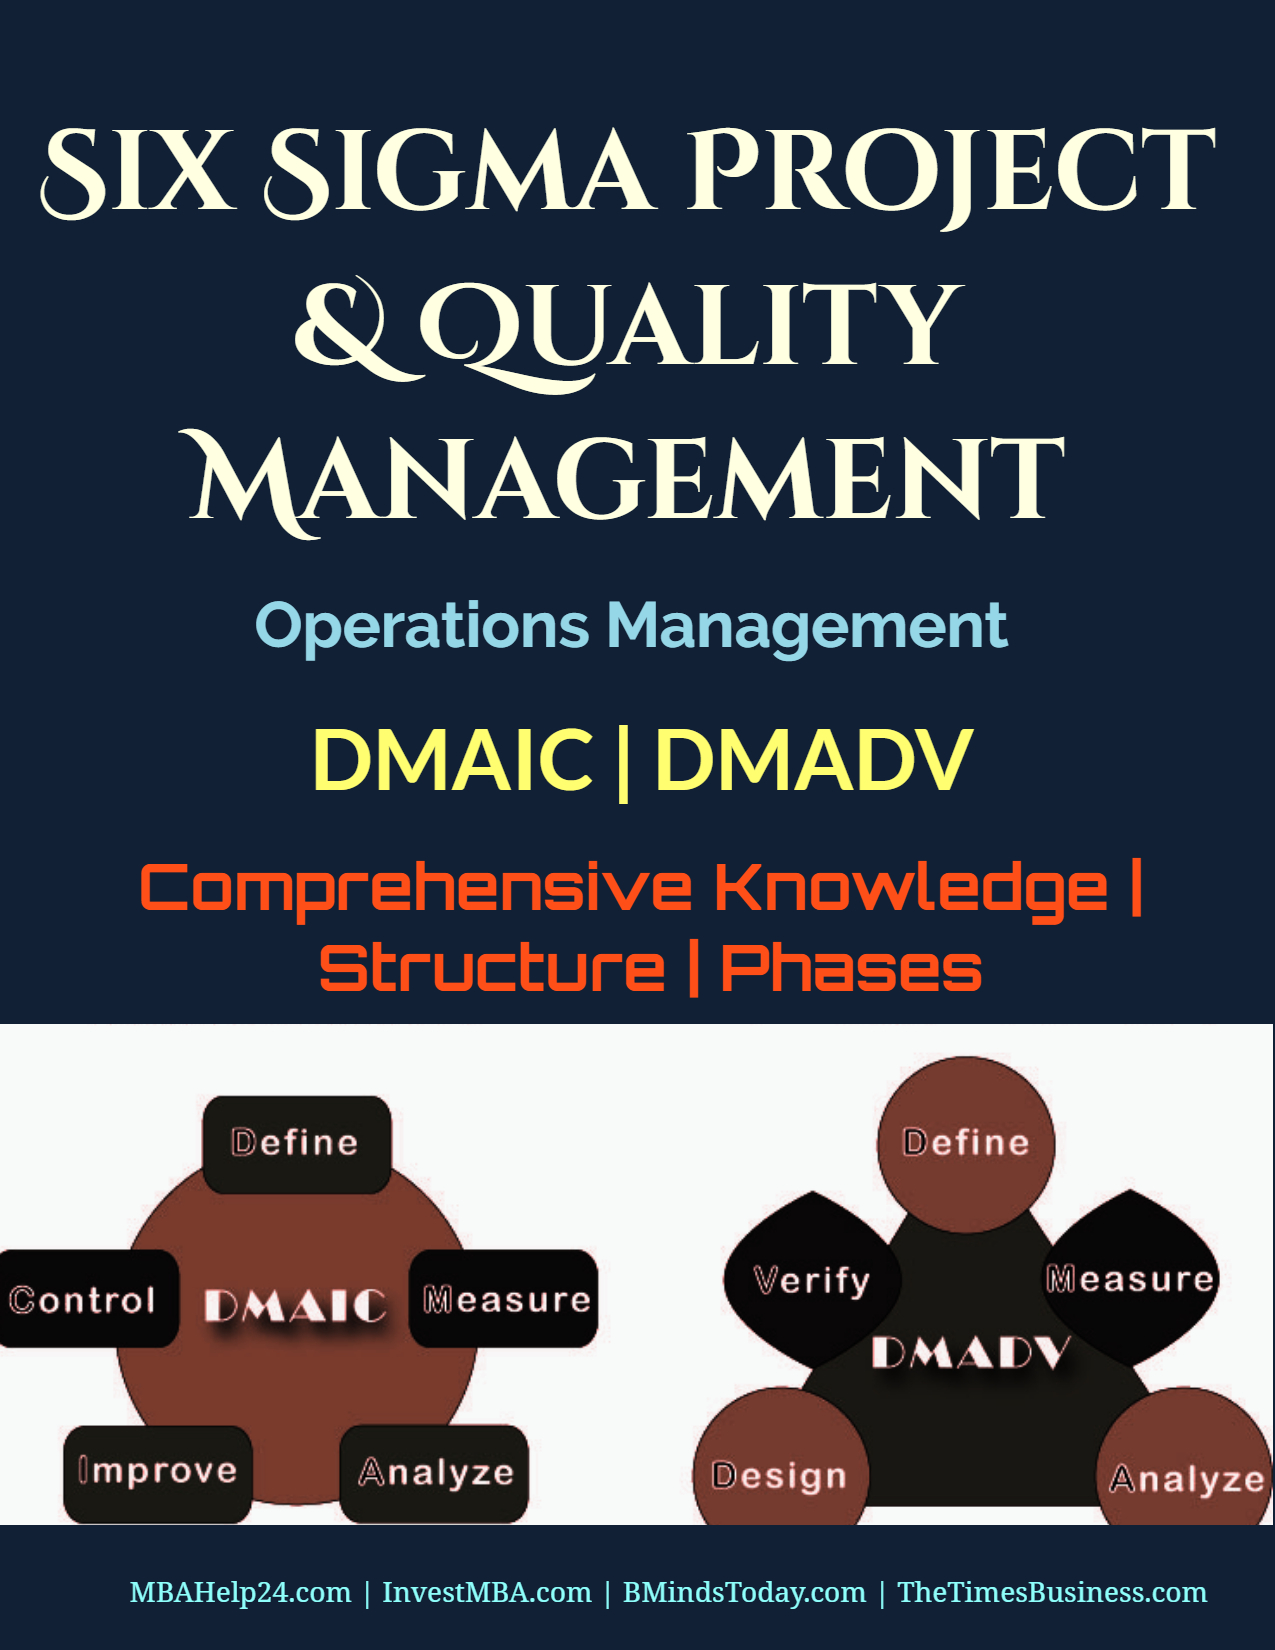 Six Sigma Project and Quality Management |DMAIC |DMADV | Structure | Phases six sigma Six Sigma Project and Quality Management | DMAIC |DMADV | DFSS | Phases Six Sigma Project and Quality Management DMAIC DMADV Structure Phases